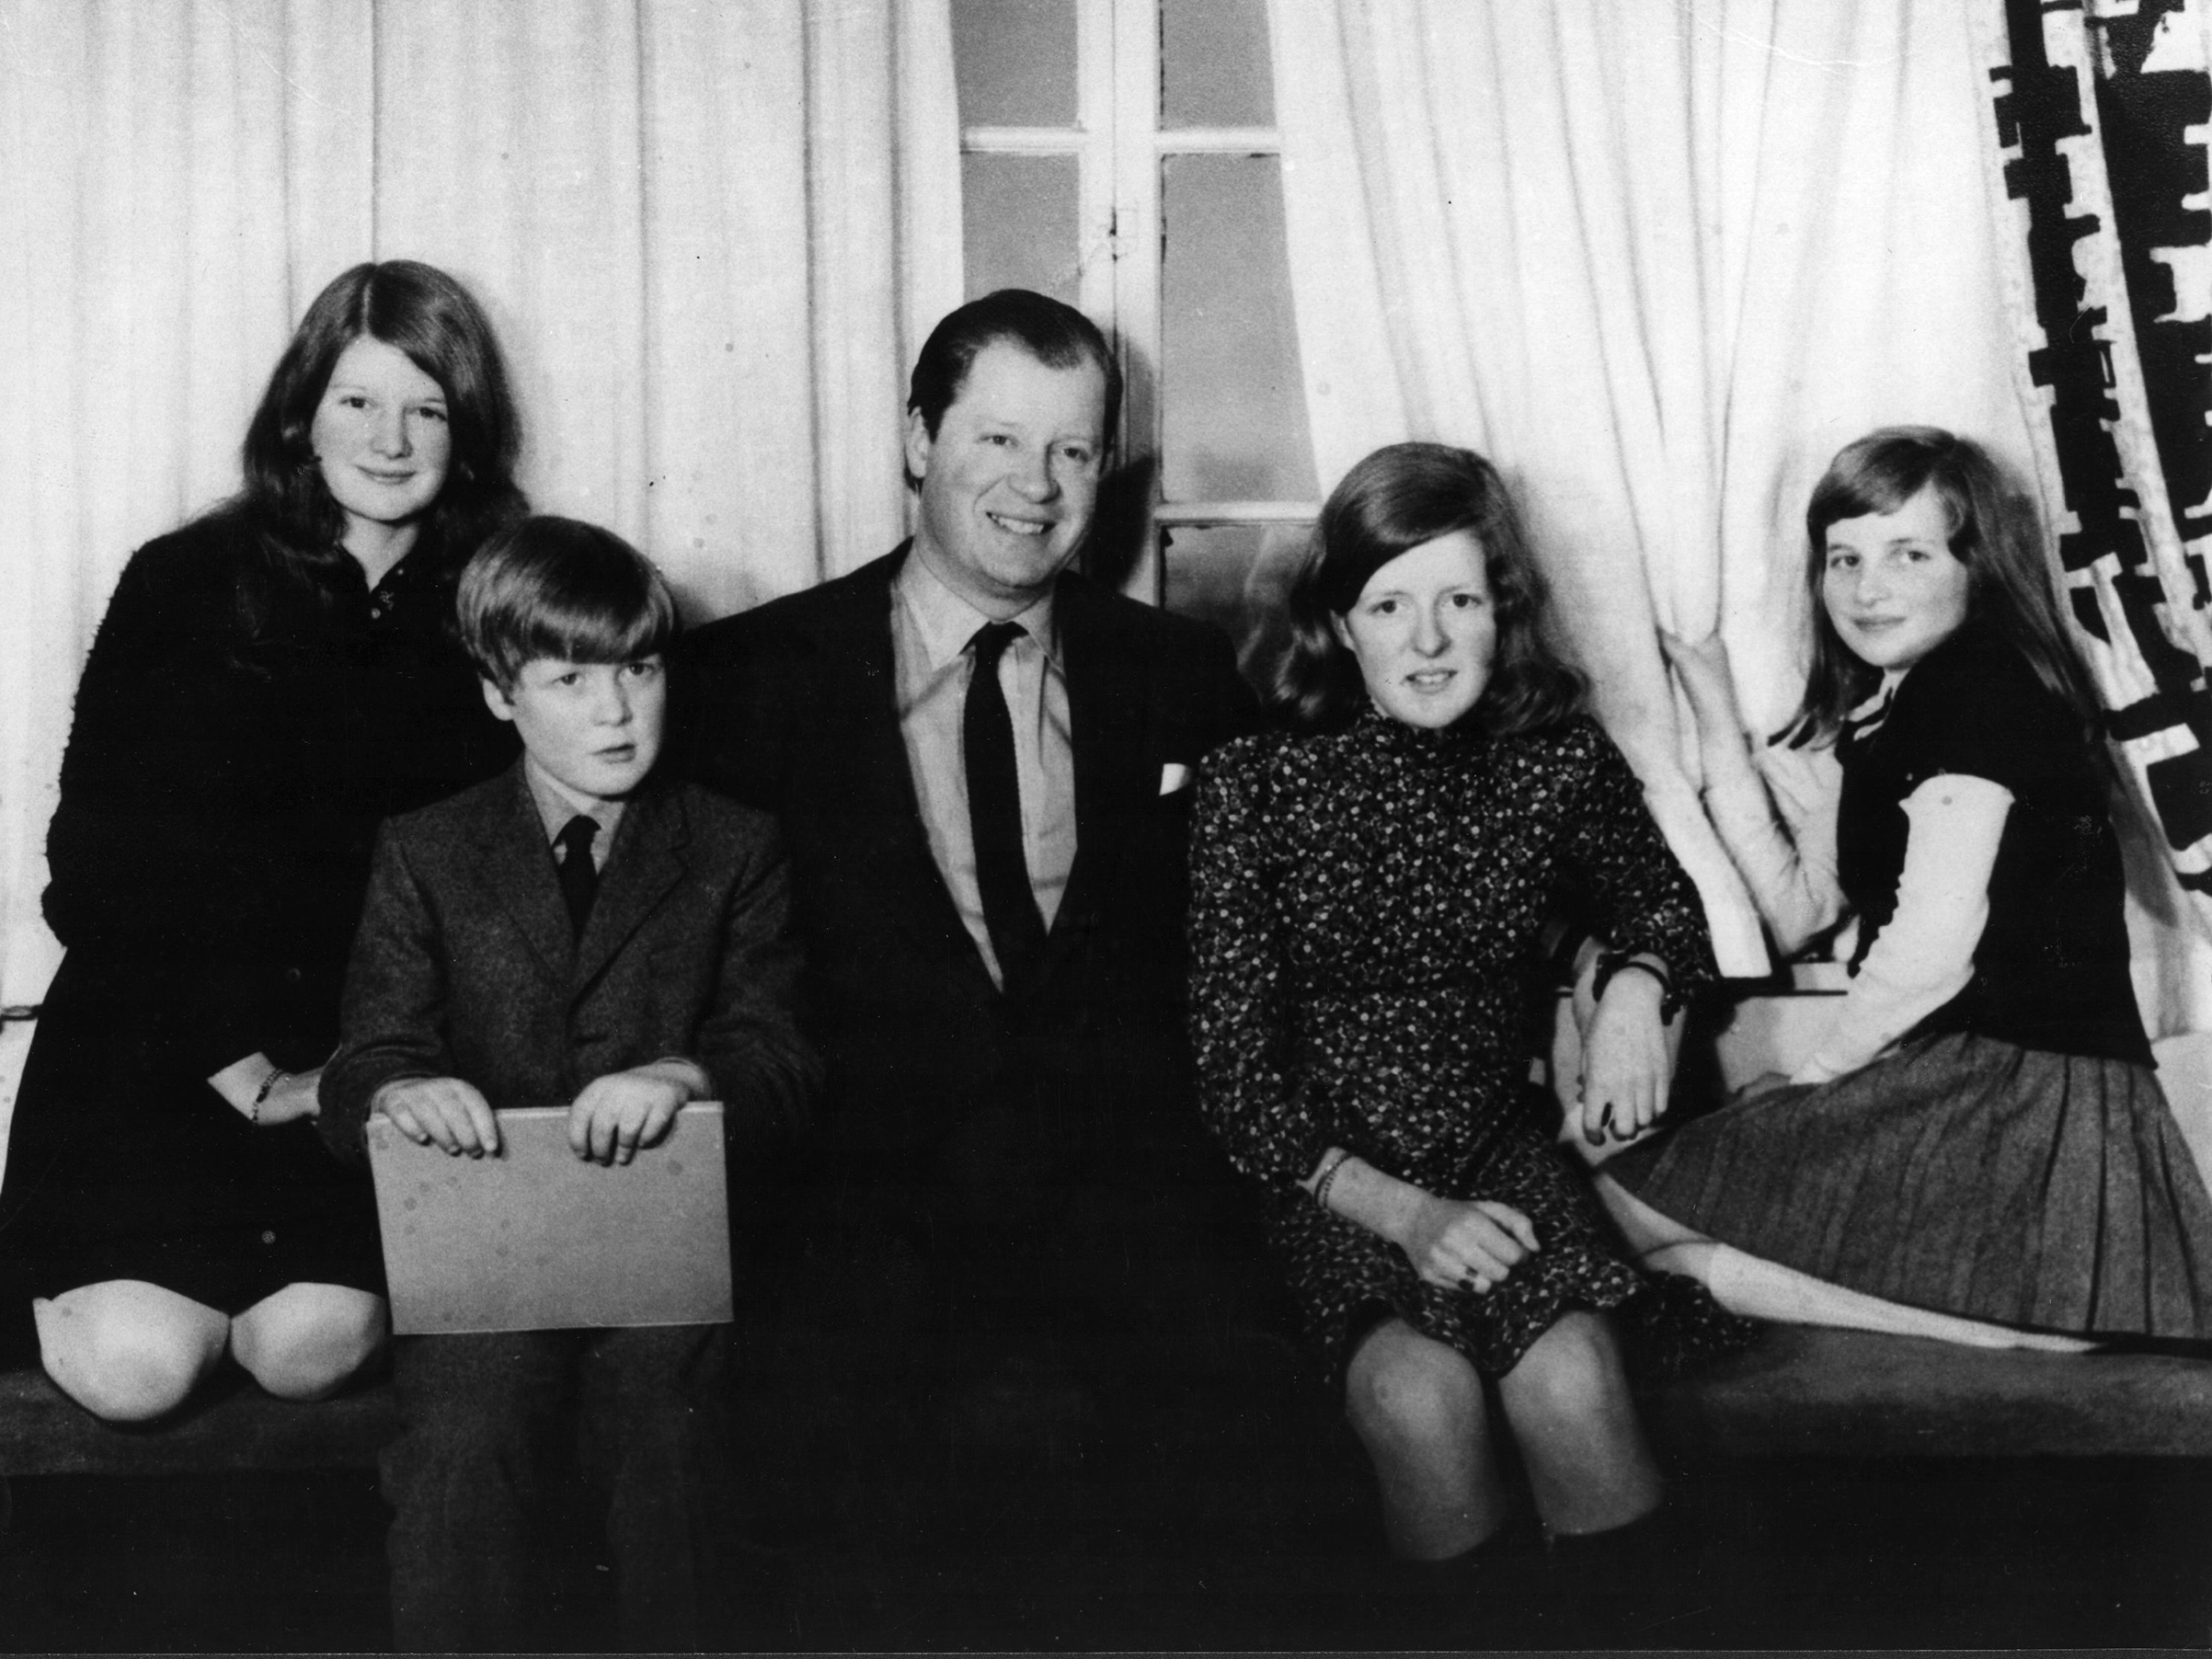 A portrait of the Spencer family; (L-R) Lady Sarah Spencer, Viscount Spencer, Earl Spencer, Lady Jane Spencer and Lady Diana Spencer at home.